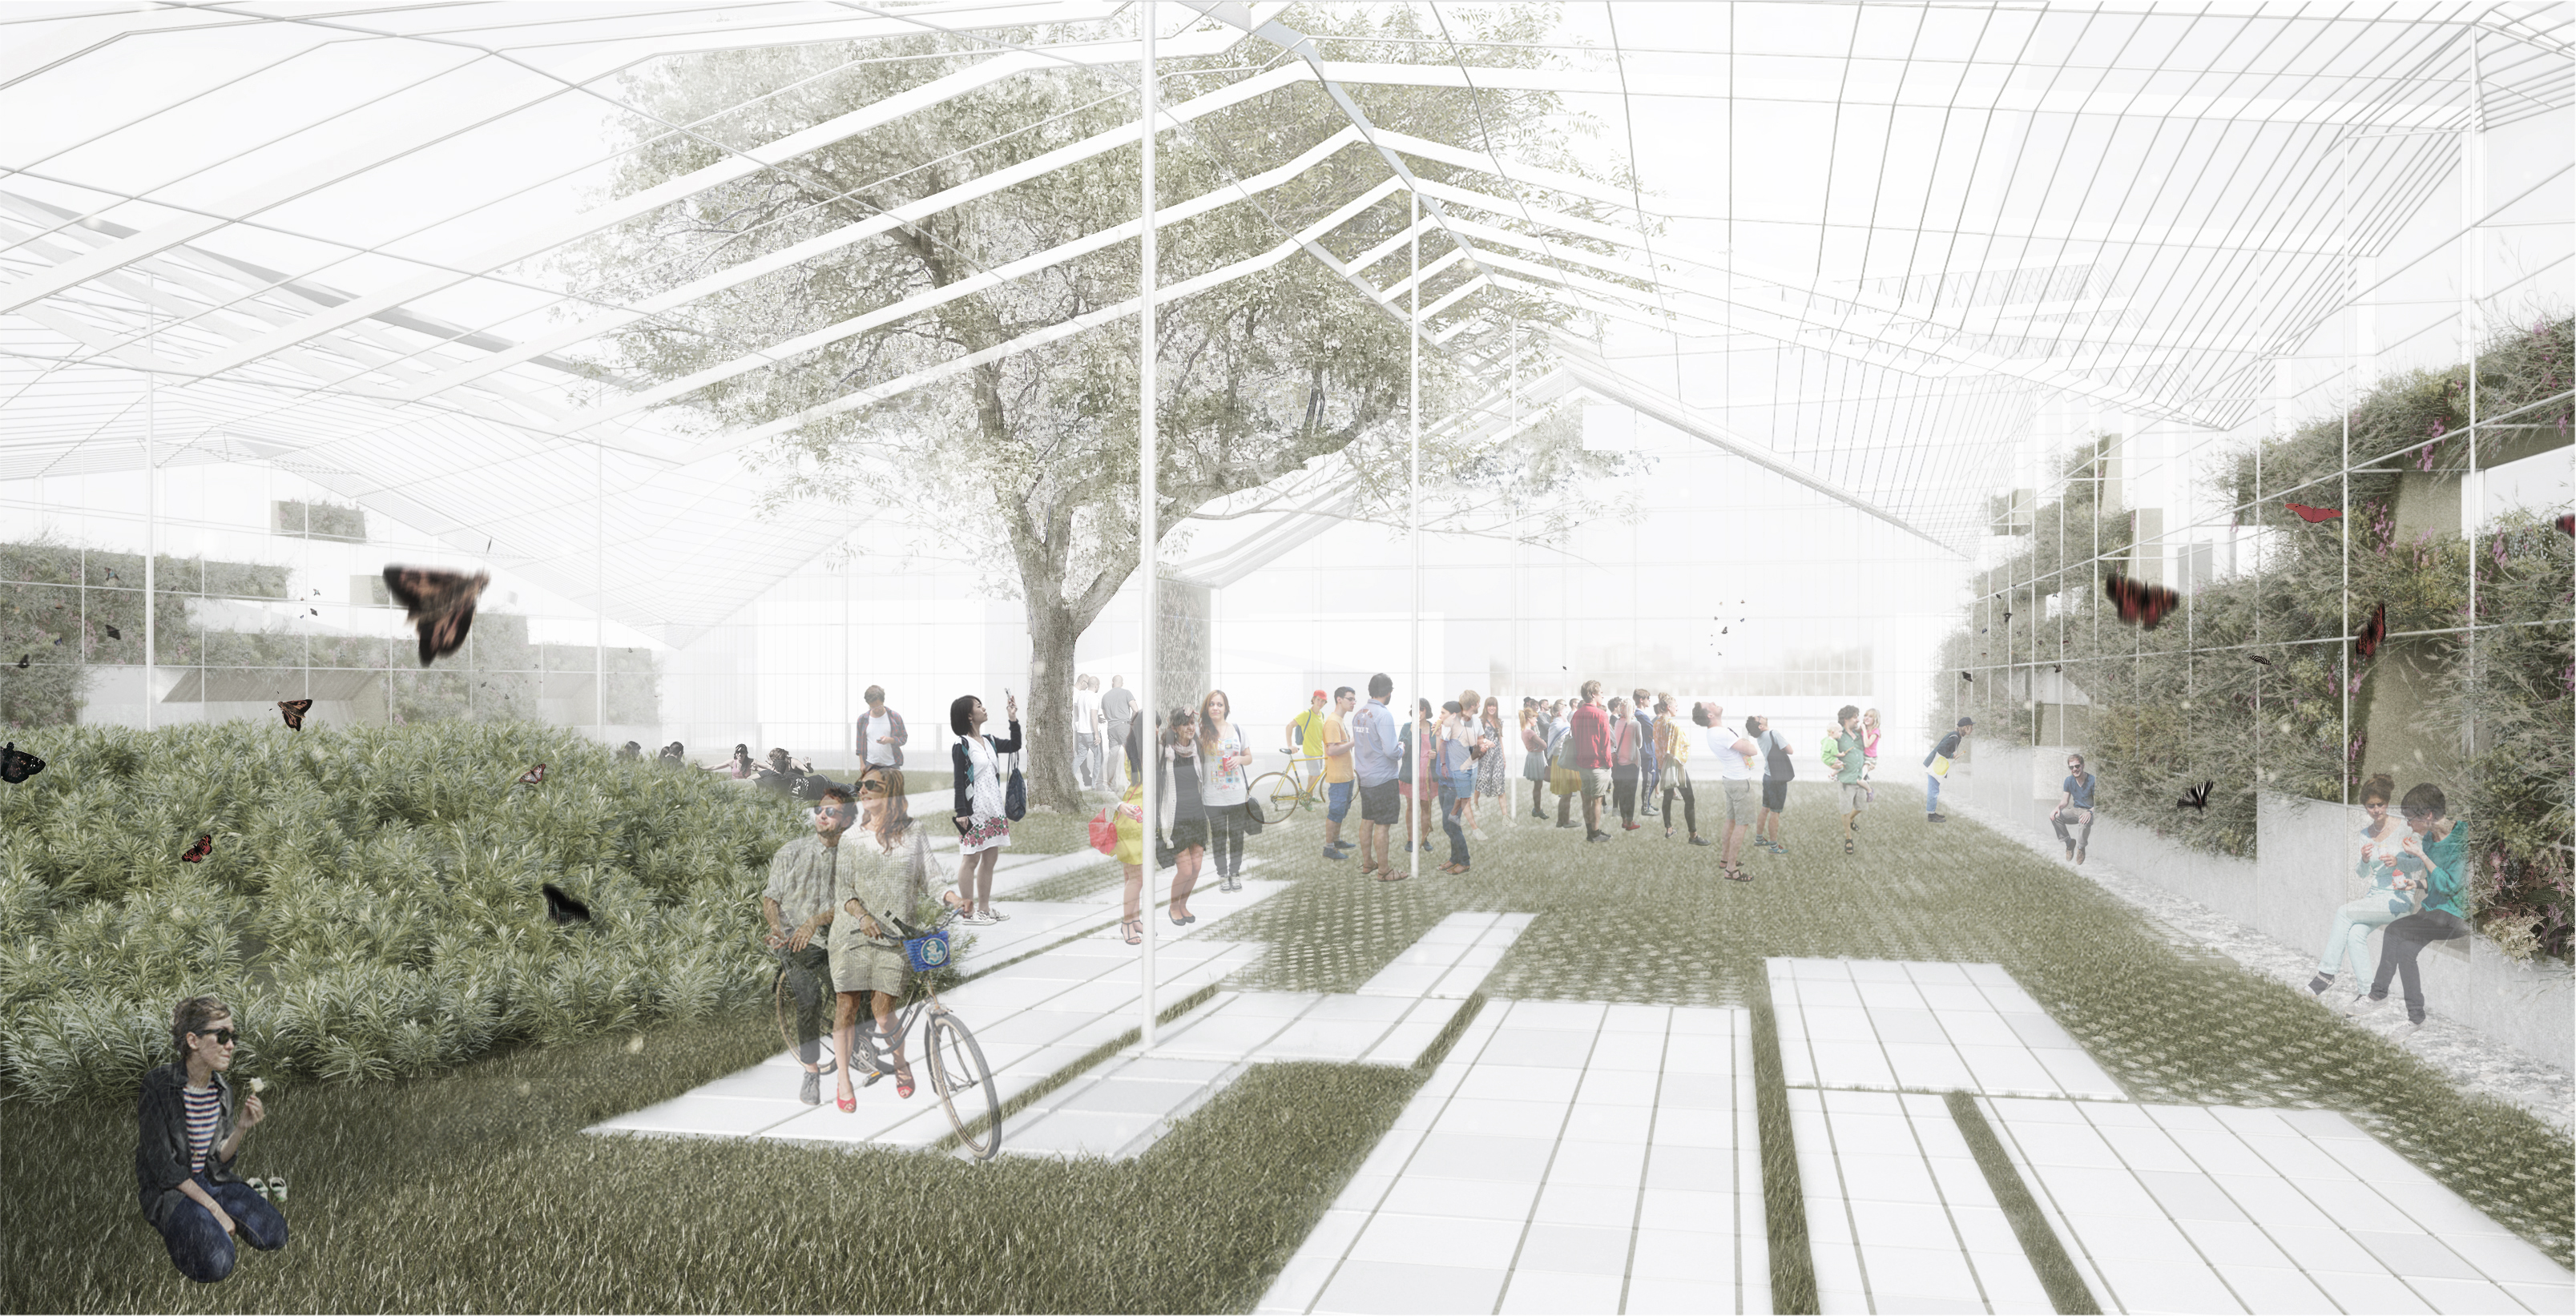 A Greenhouse Inspired Park To Bring New Public Space To